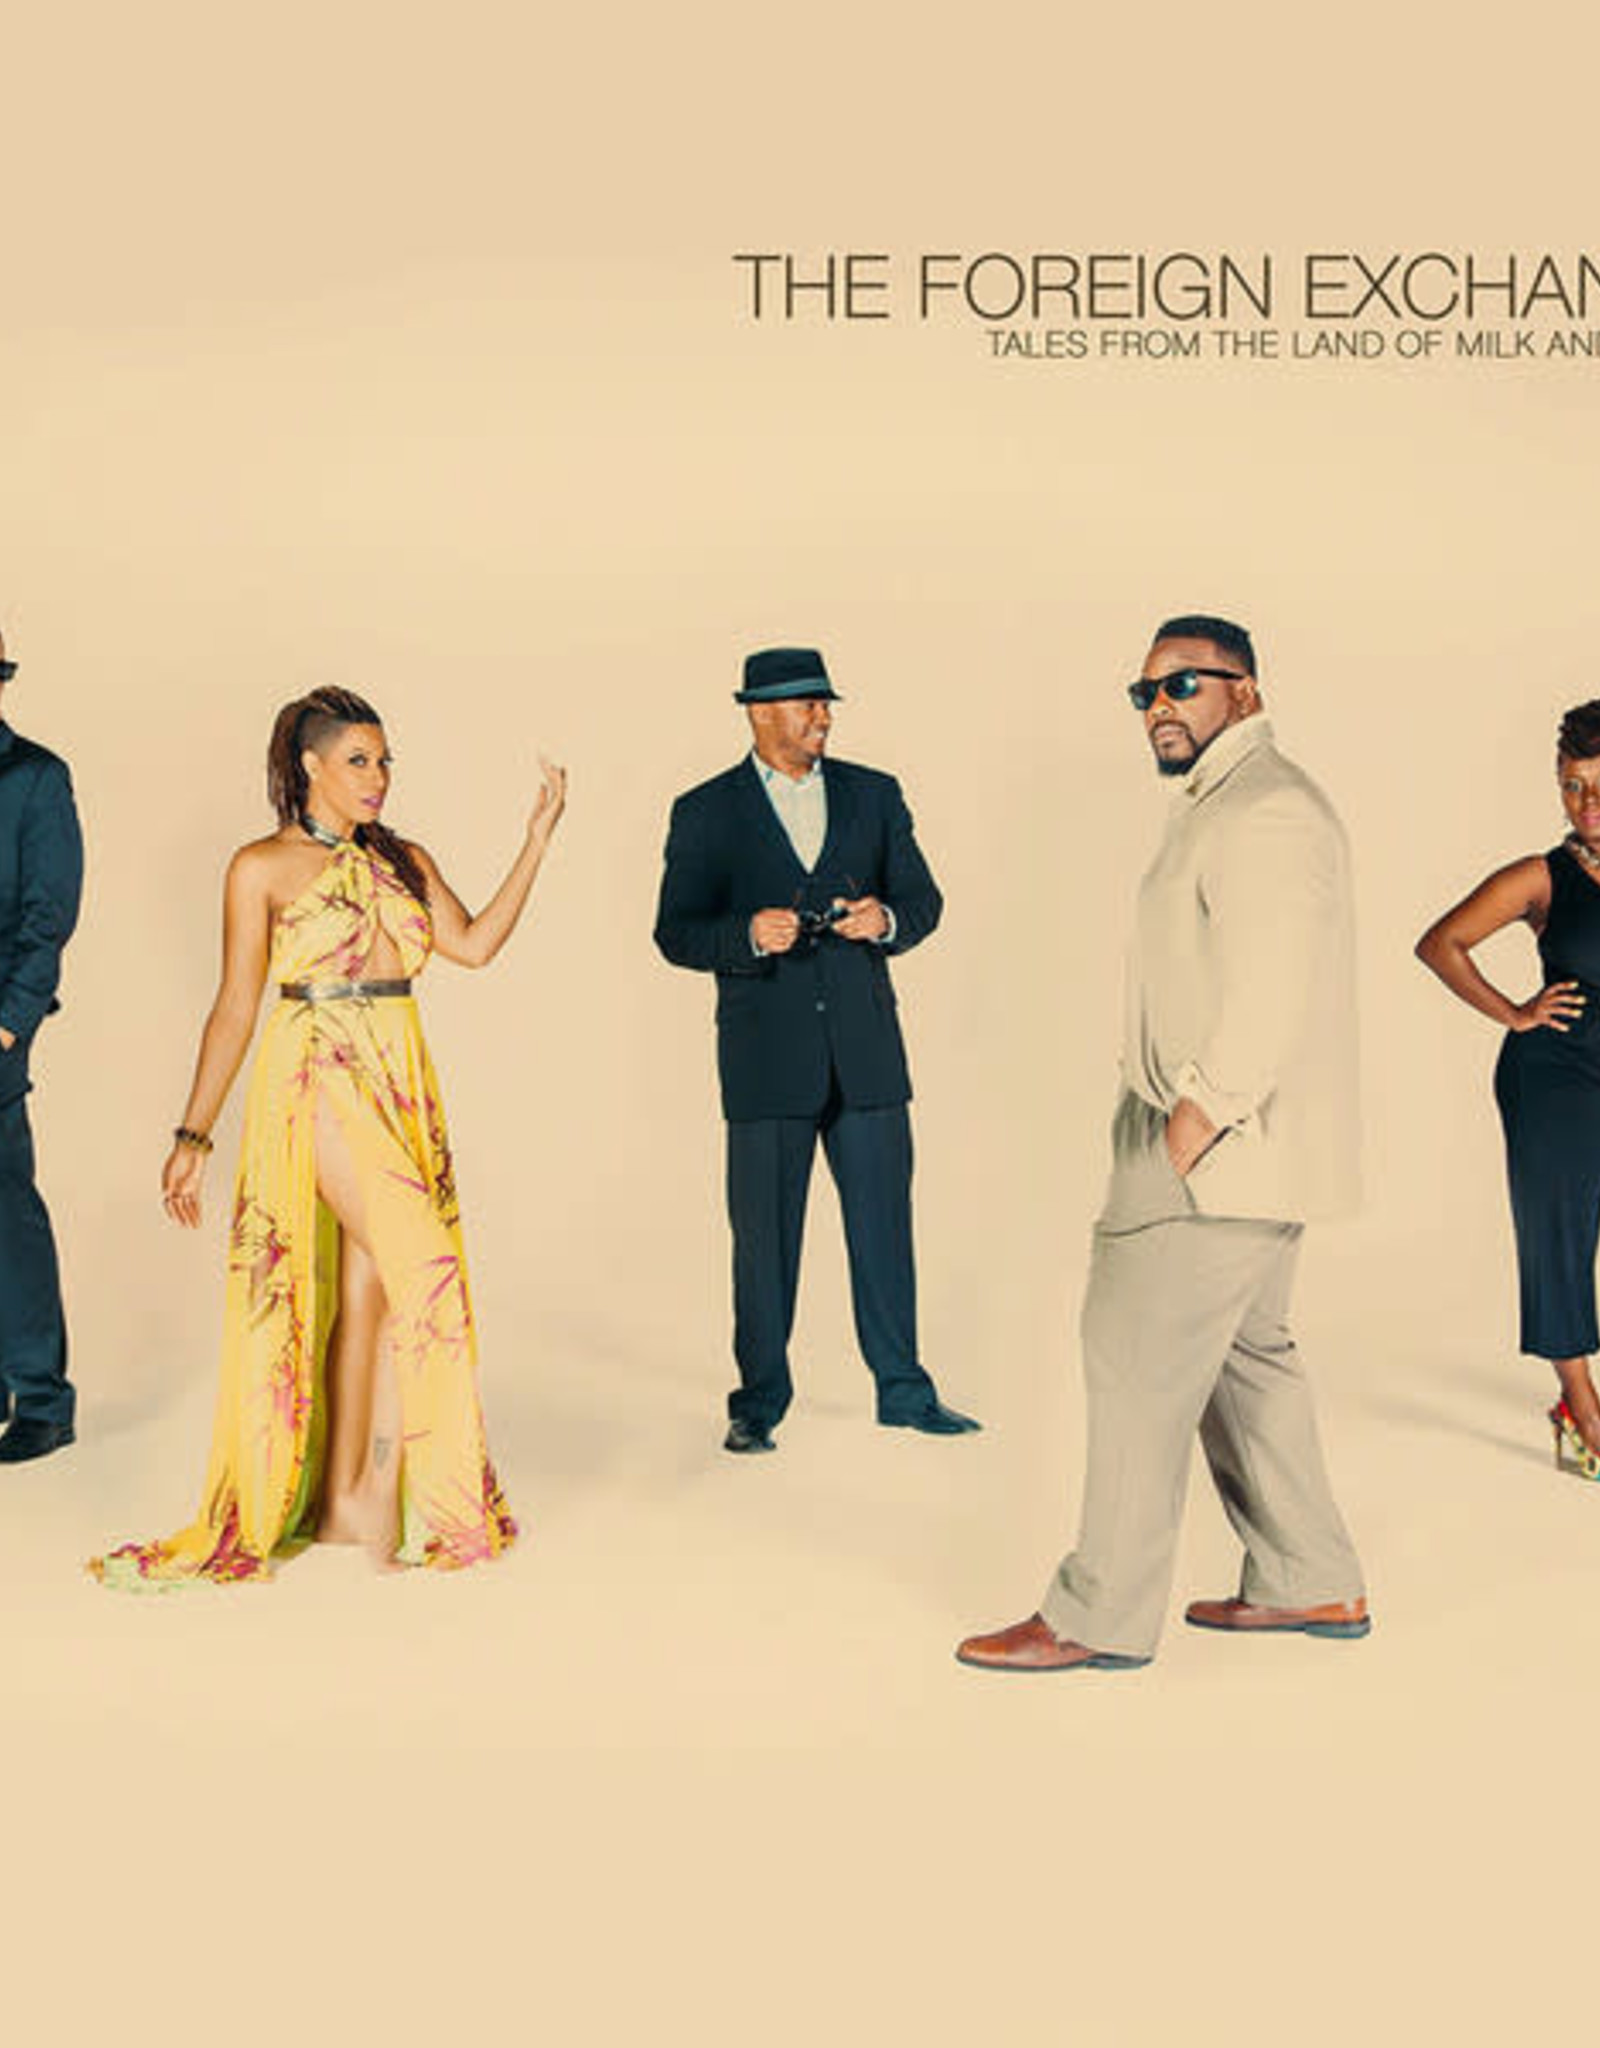 Foreign Exchange - Tales From The Land Of Milk And Honey (2Lp Color Vinyl)